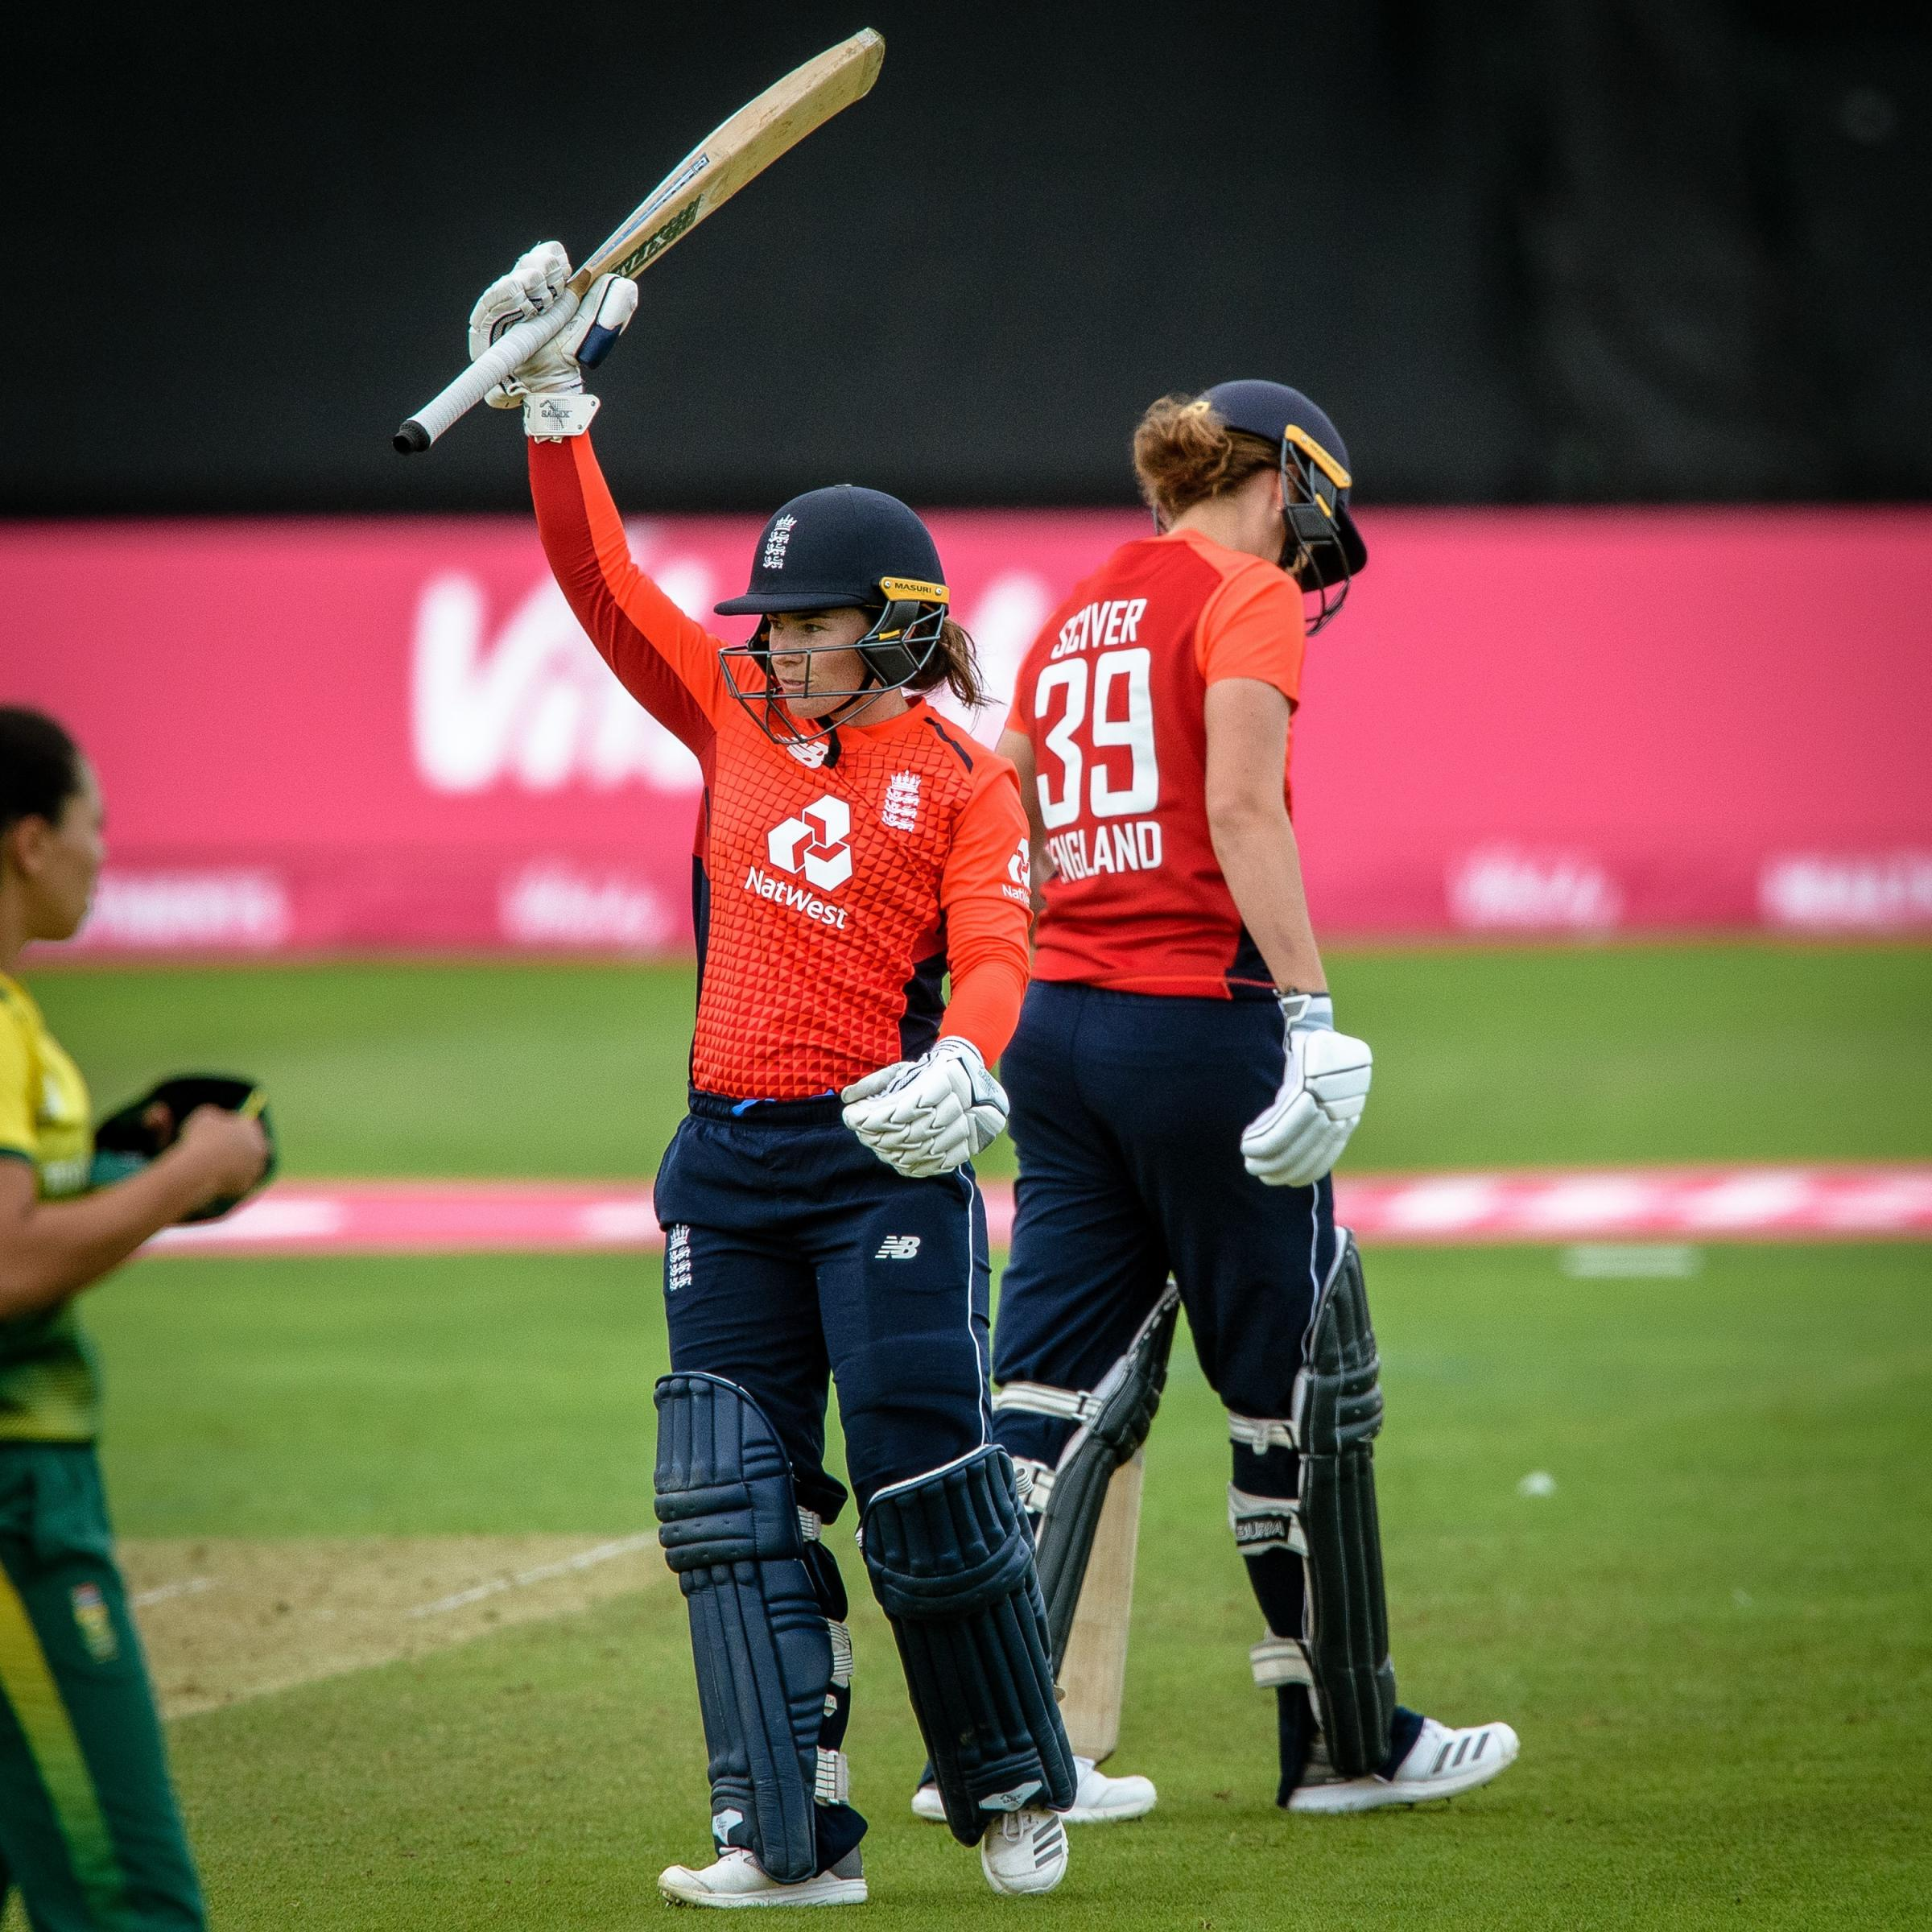 RETURN: Tammy Beaumont celebrates her century in England's IT20 against South Africa last summer - England will be back in Taunton for an Ashes Test in 2019